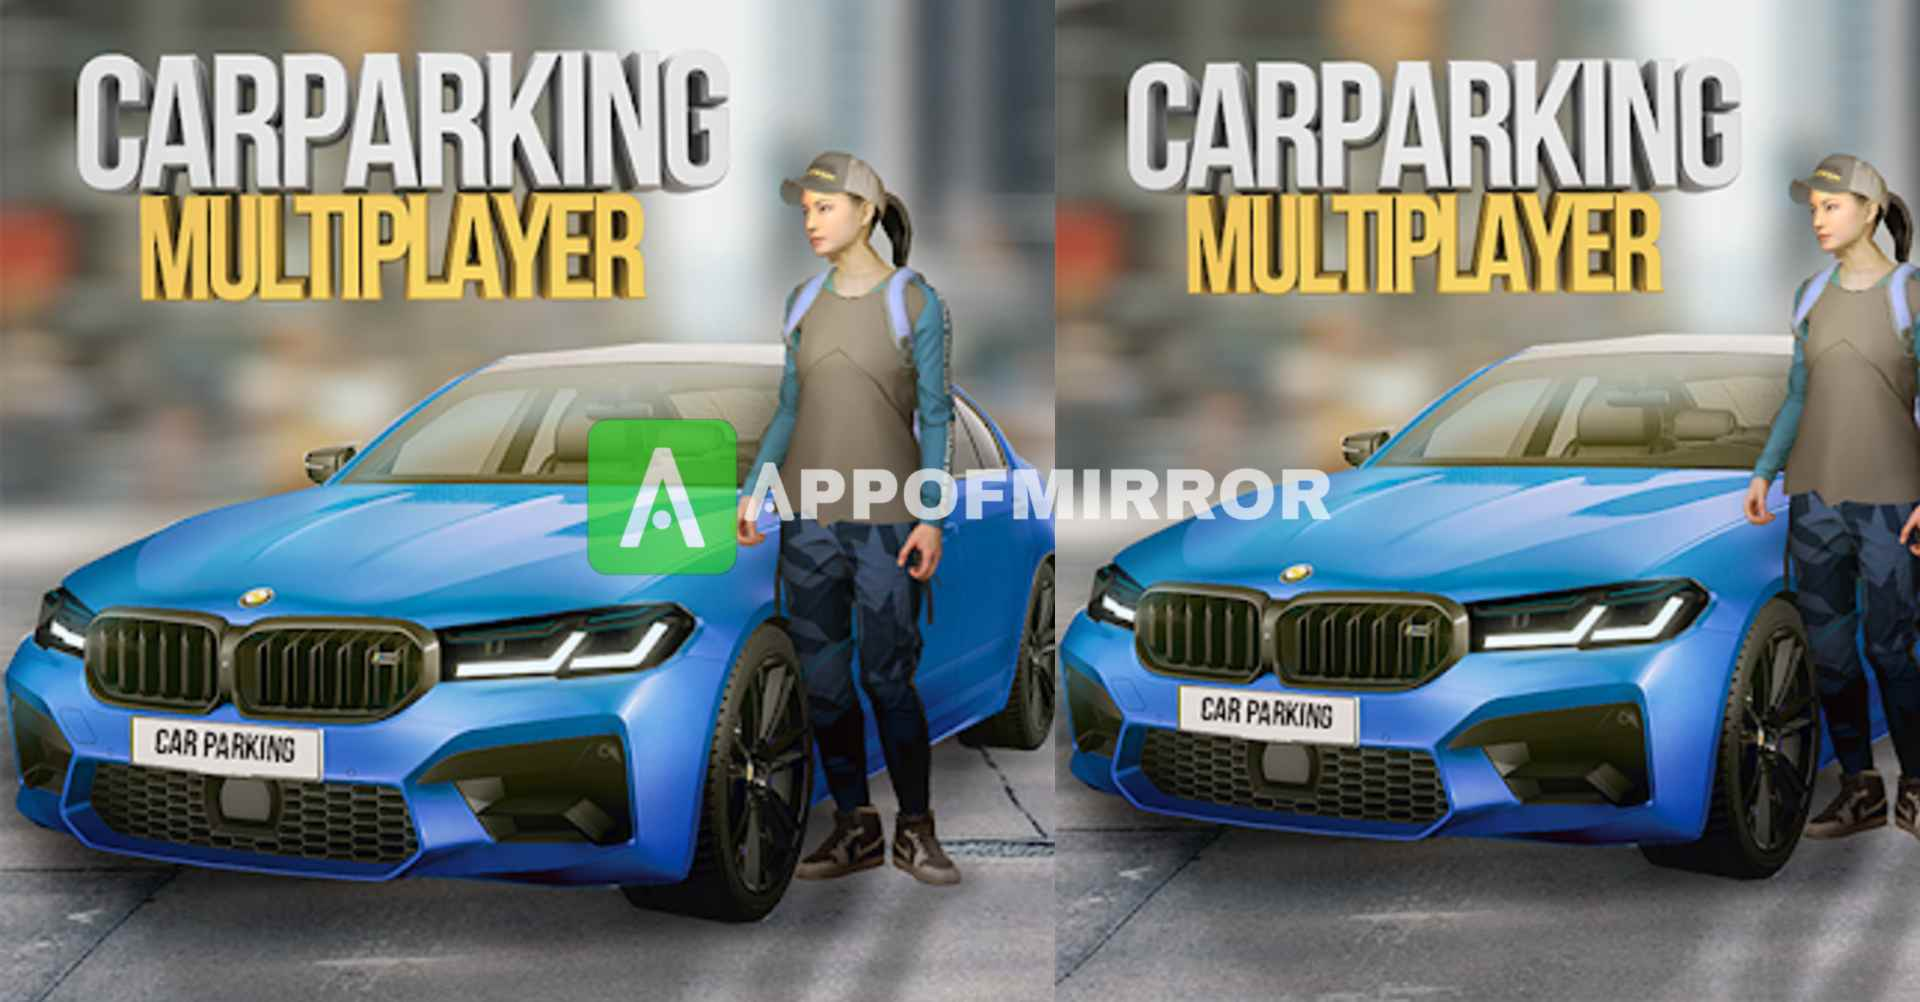 Read more about the article Car Parking Multiplayer MOD APK 4.8.3.6 (Unlimited Money) 2021 Latest Free